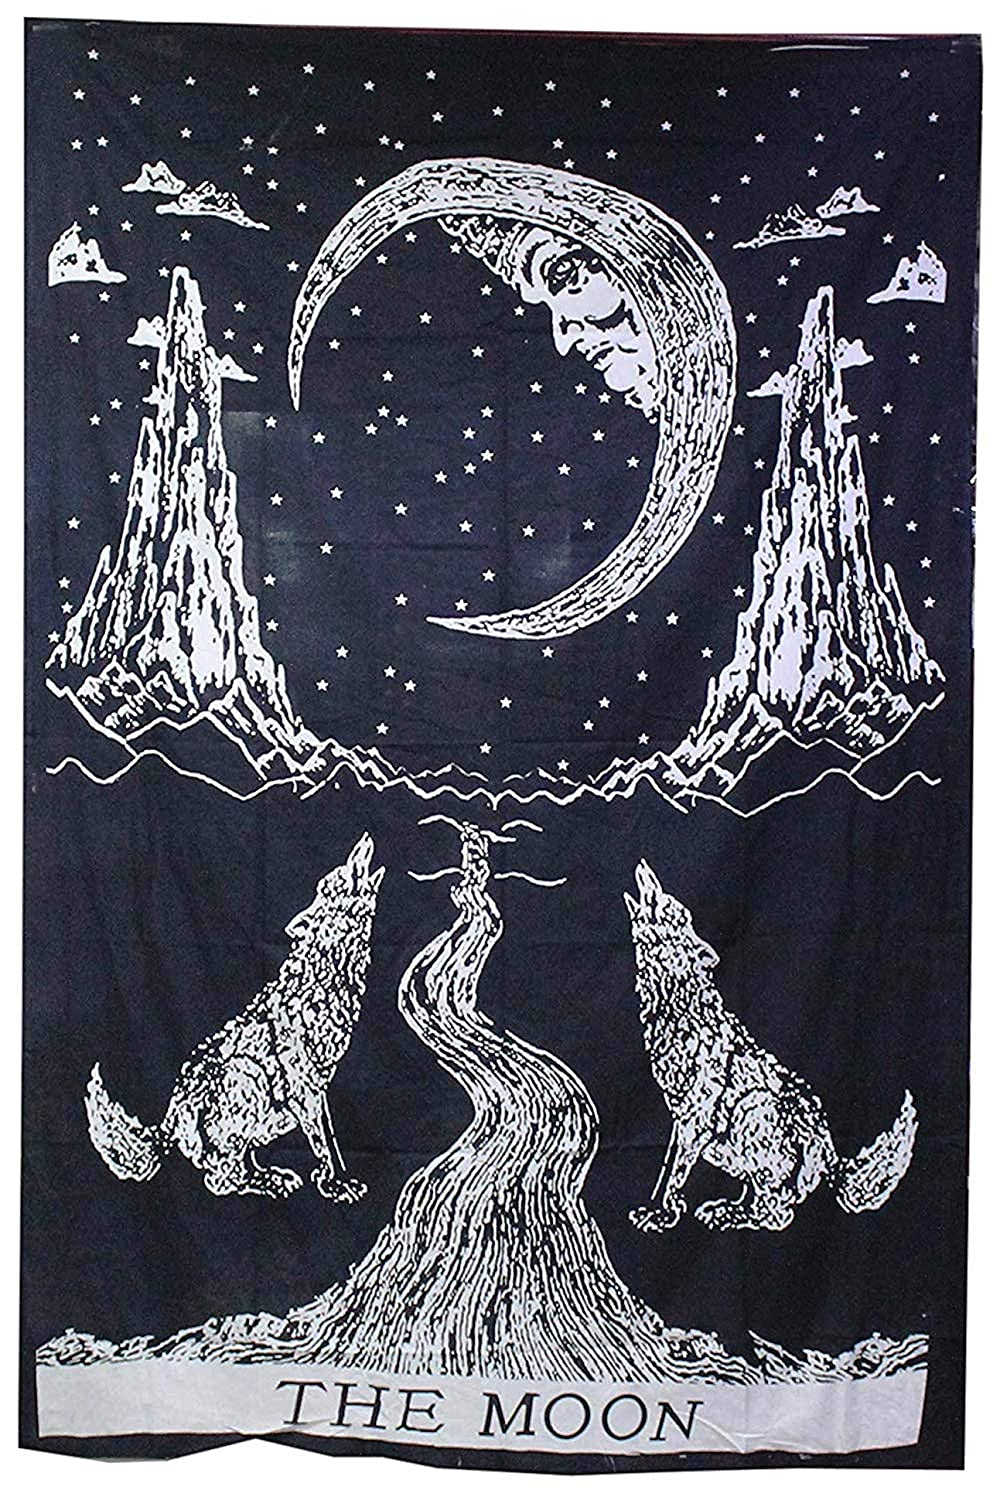 raajsee Black and White Crying Wolf Tapestry Hippie,The Moon Tapestries Wall Hanging Mandala, Indian Cotton Boho Bedspread, Bohemian Bedding, Yoga Mat Rugs Meditation Tapestrys 54x71 Inches